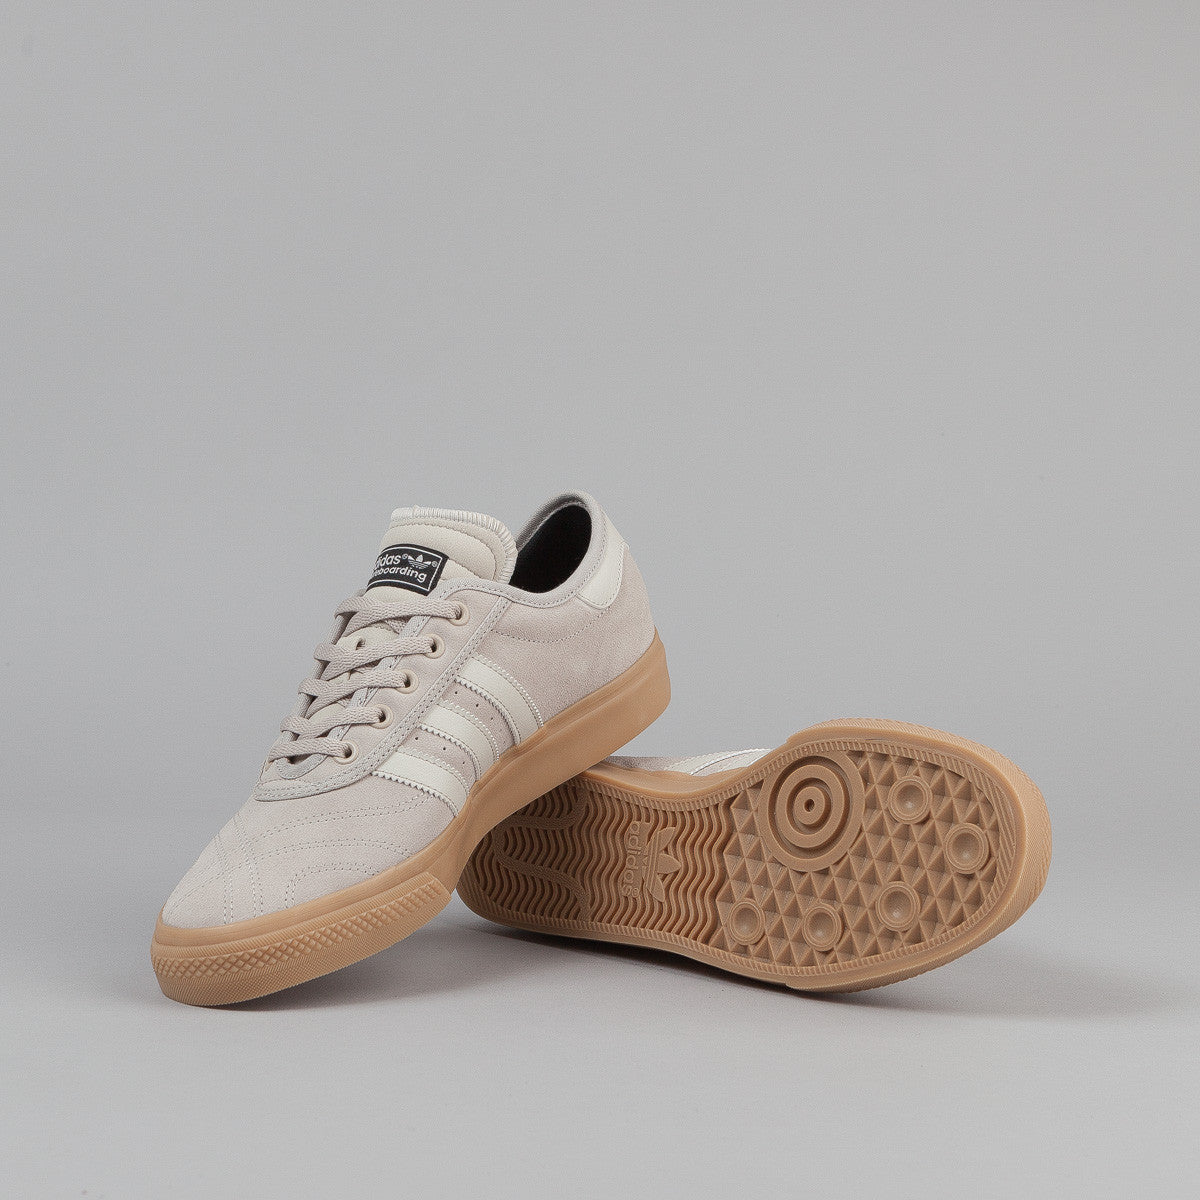 Adidas Adi-Ease Premier Shoes - Mist Stone / Core Black / Gum